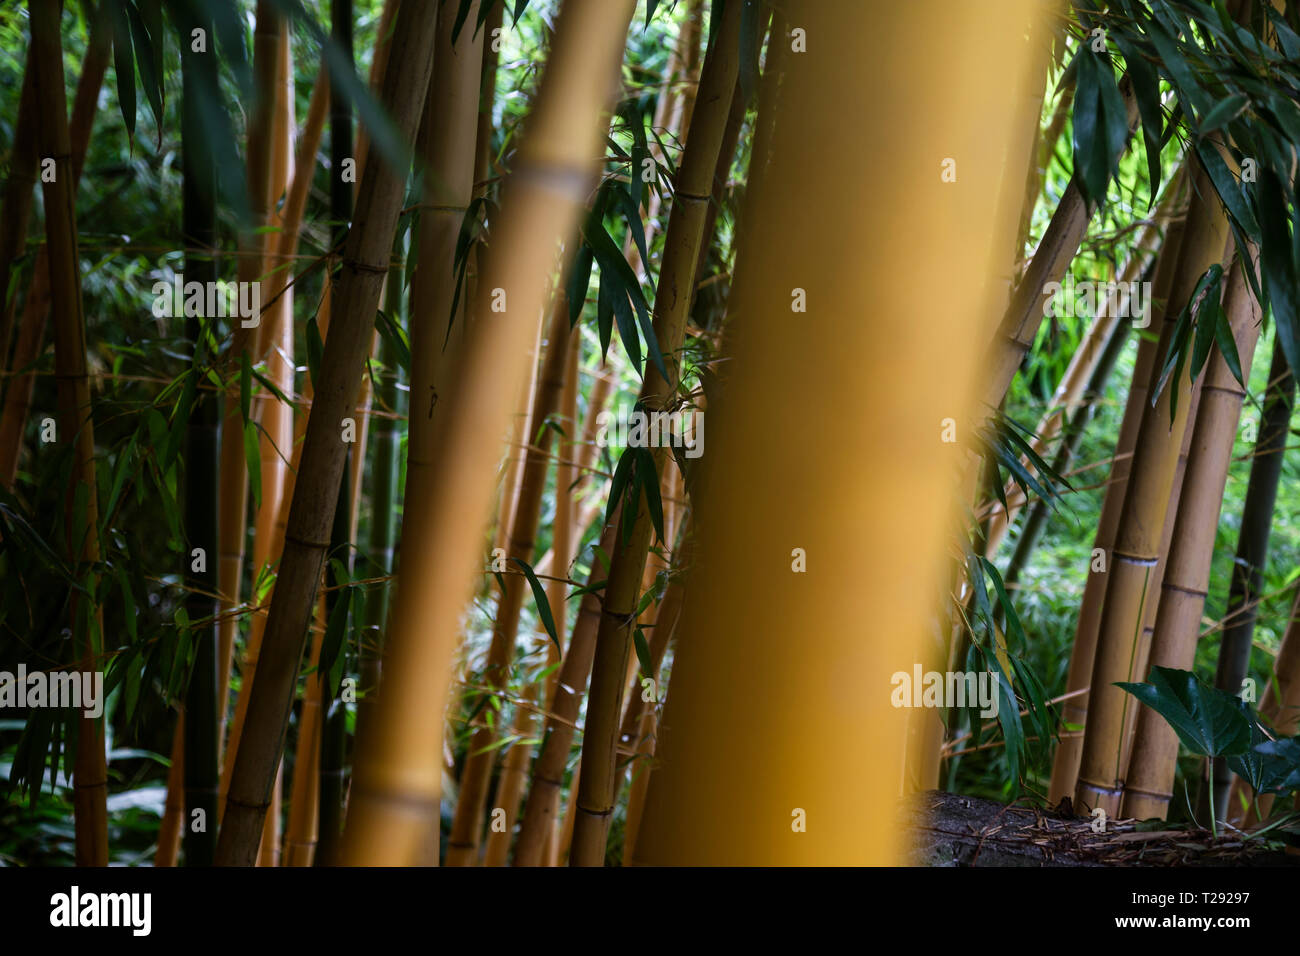 Mighty bambbo forrest, close up - Stock Image